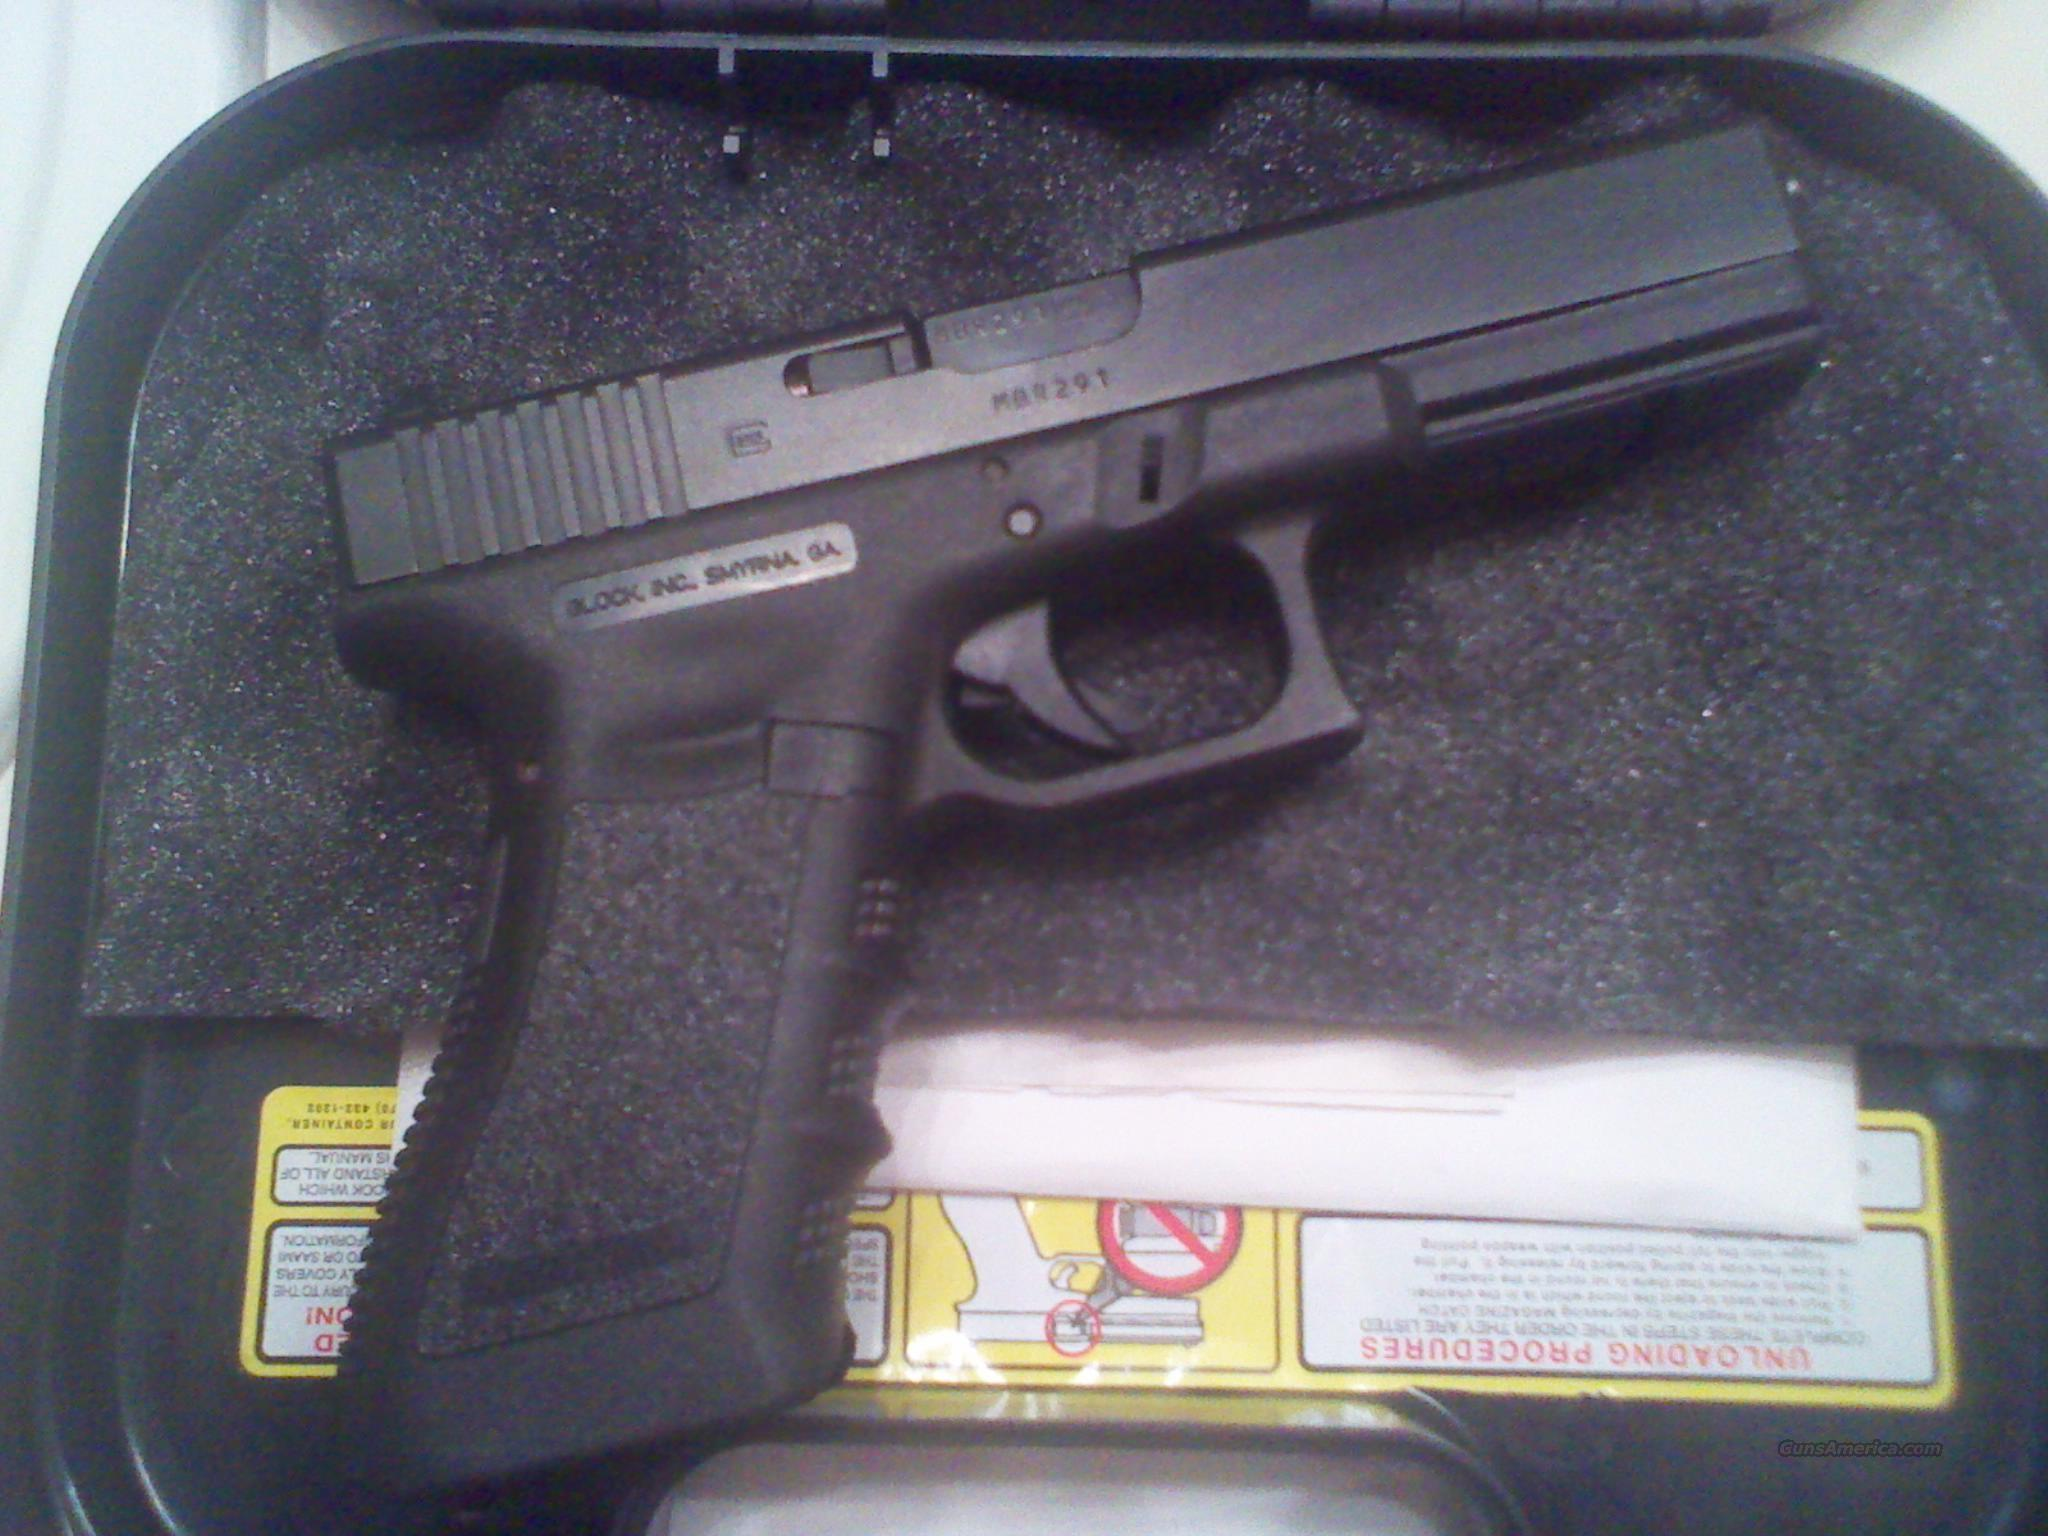 Brand New Glock 22 40 cal never fired new in case  Guns > Pistols > Glock Pistols > 22